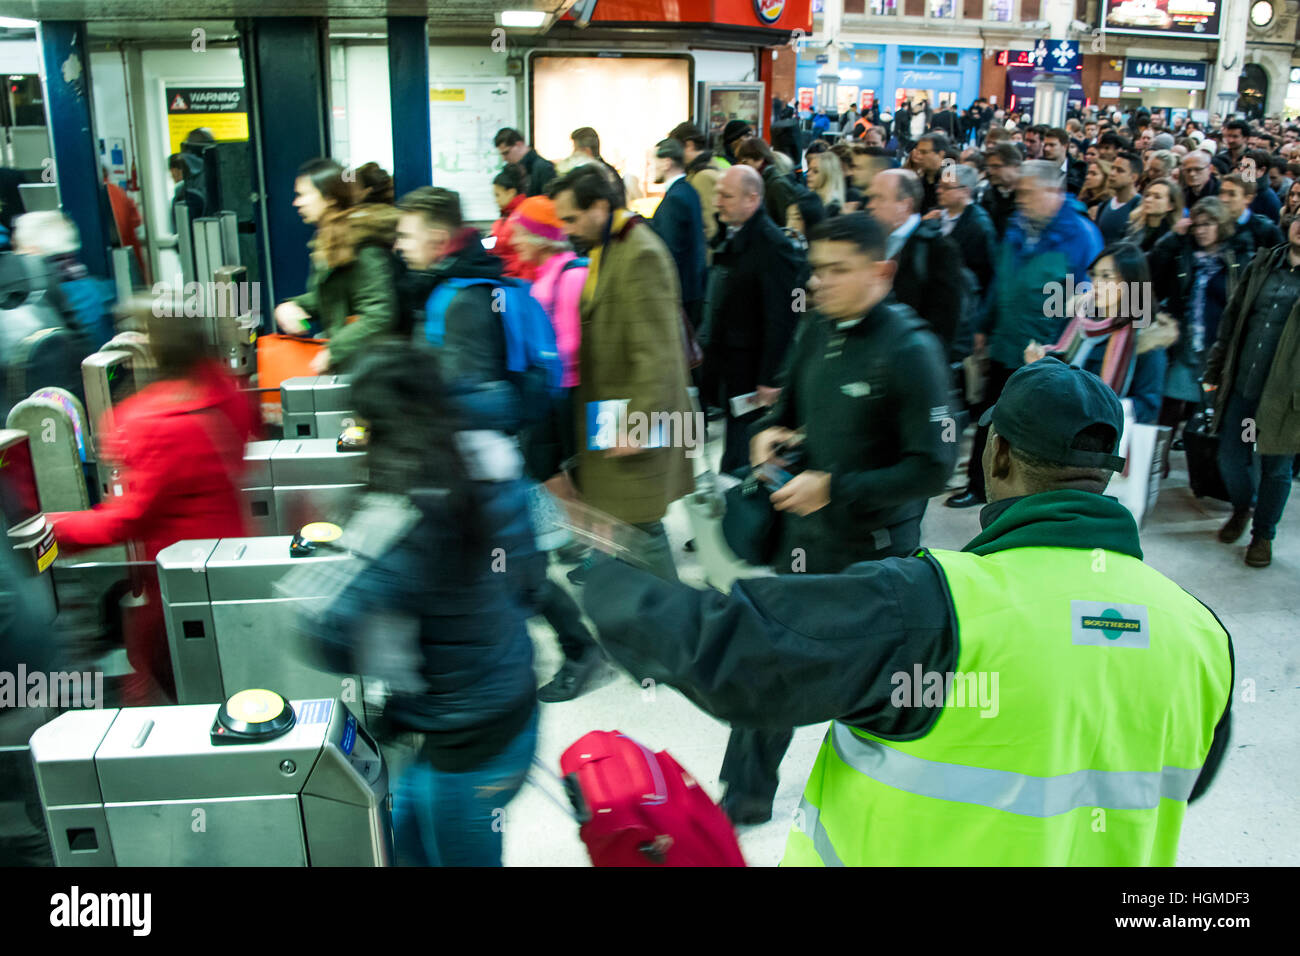 London, UK. 10th January, 2016. Southern staff try to help passengers queueing for the Gatwick Express which was - Stock Image